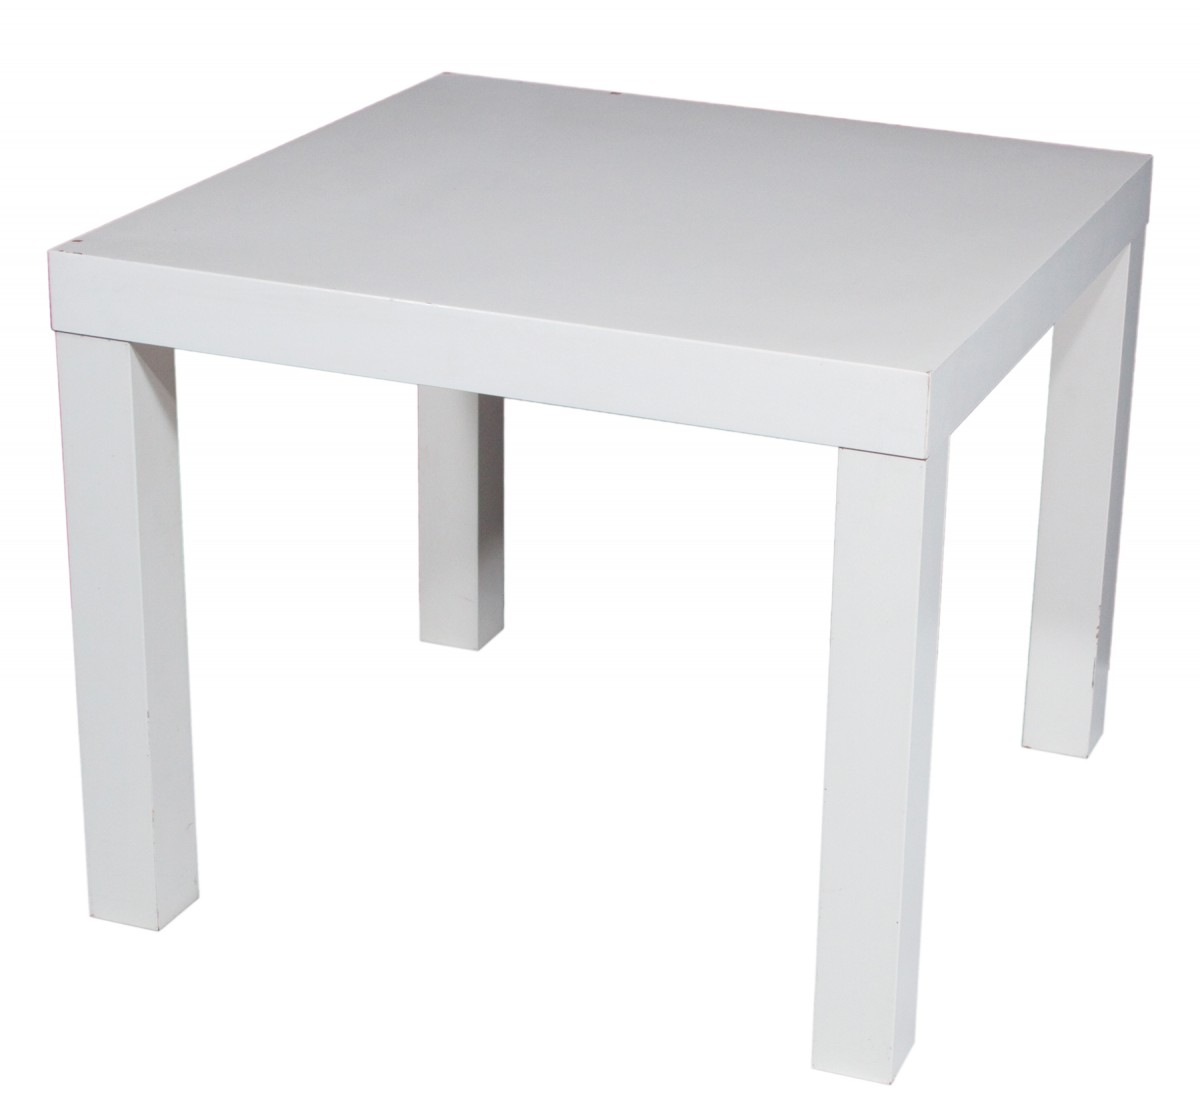 table basse blanche table basse bar images table basse. Black Bedroom Furniture Sets. Home Design Ideas